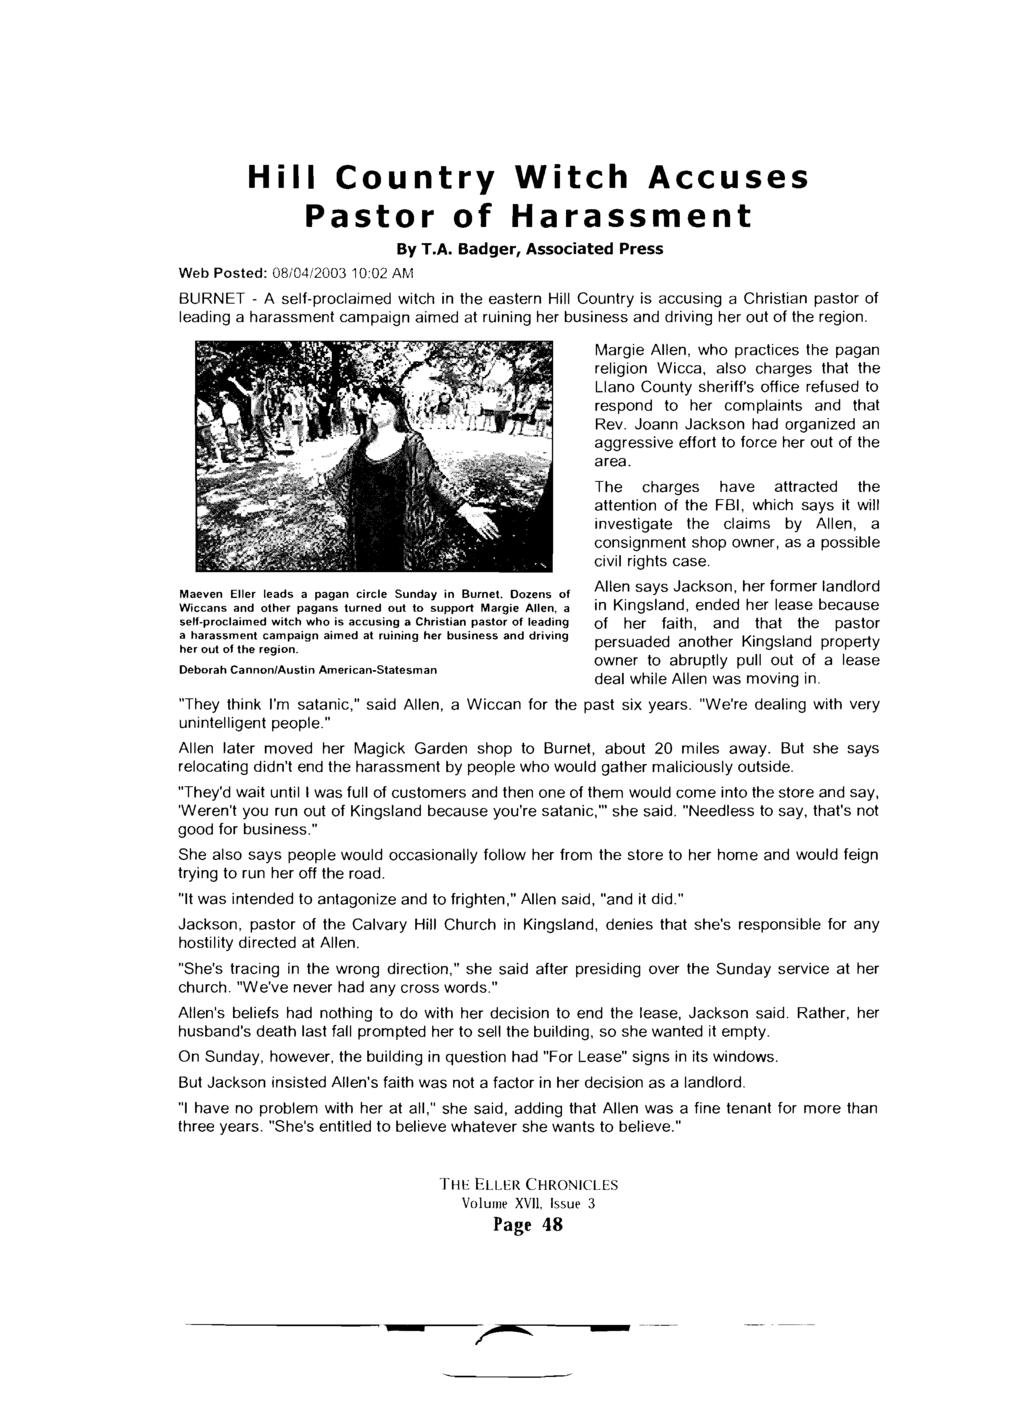 Hill Country Witch Accuses Pastor of Harassment Web Posted: 08/04/2003 10:02 AM Maeven Eller leads a pagan circle Sunday in Burnet.